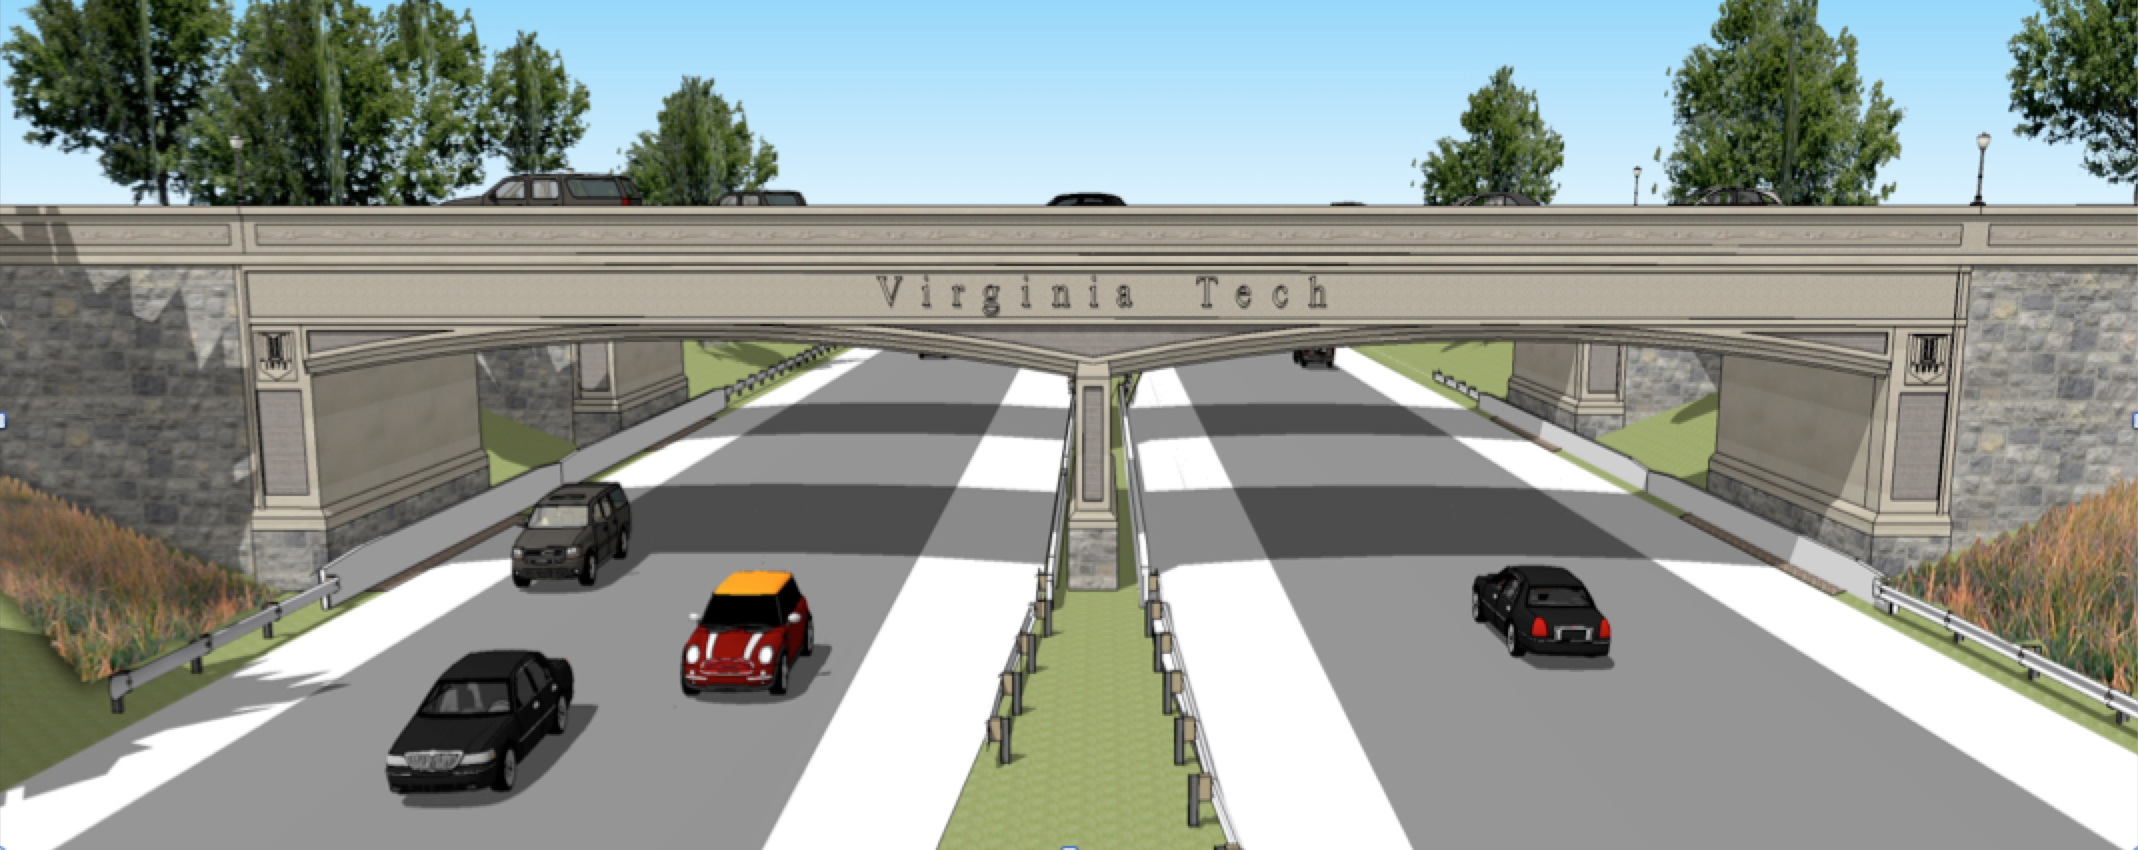 Artist rendering of bridge showing Virginia Tech name and shield